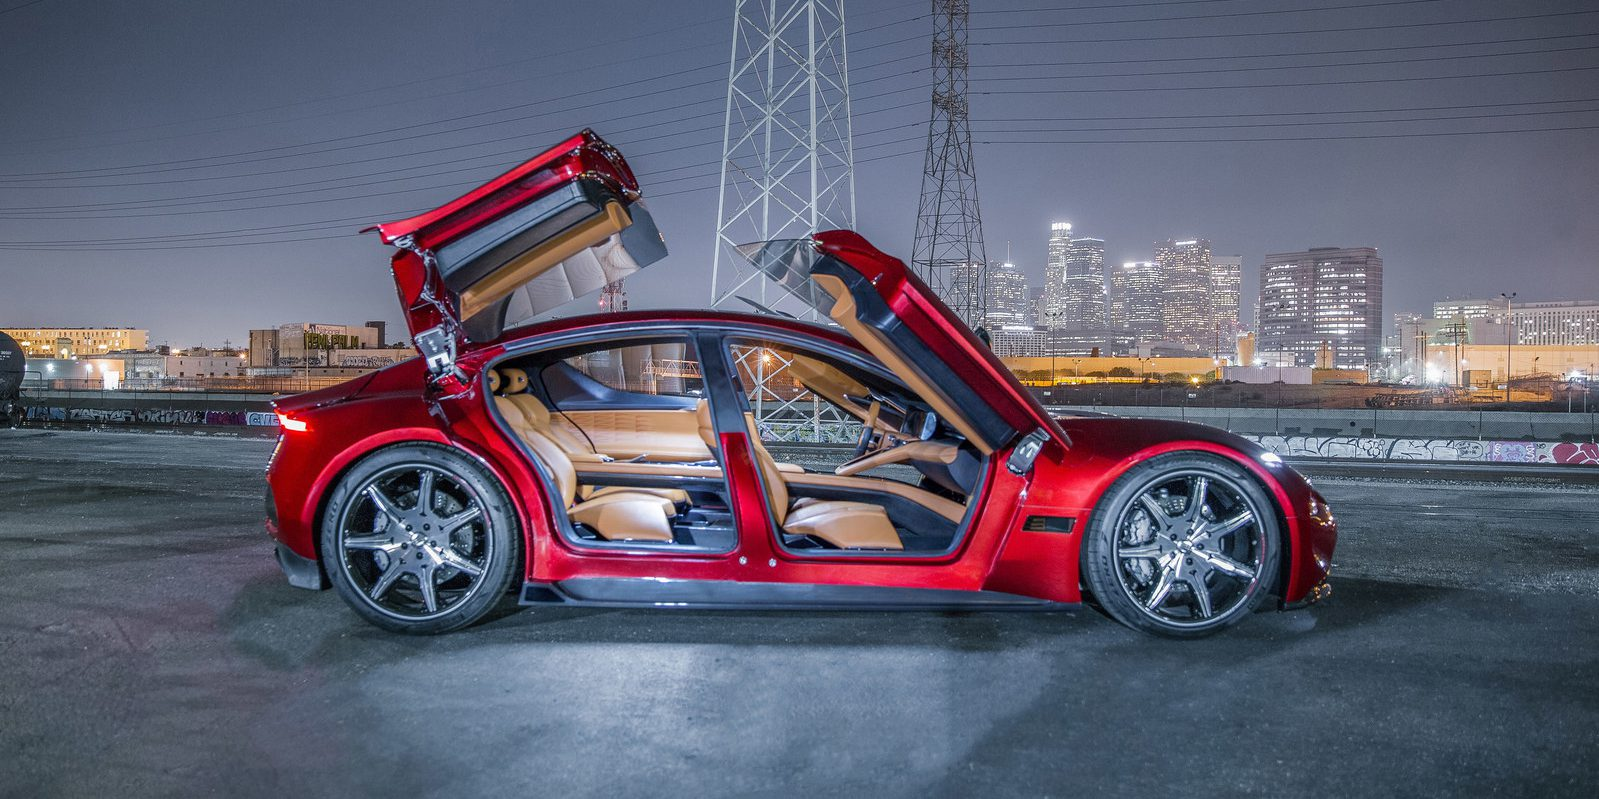 fisker officially unveils its new emotion all